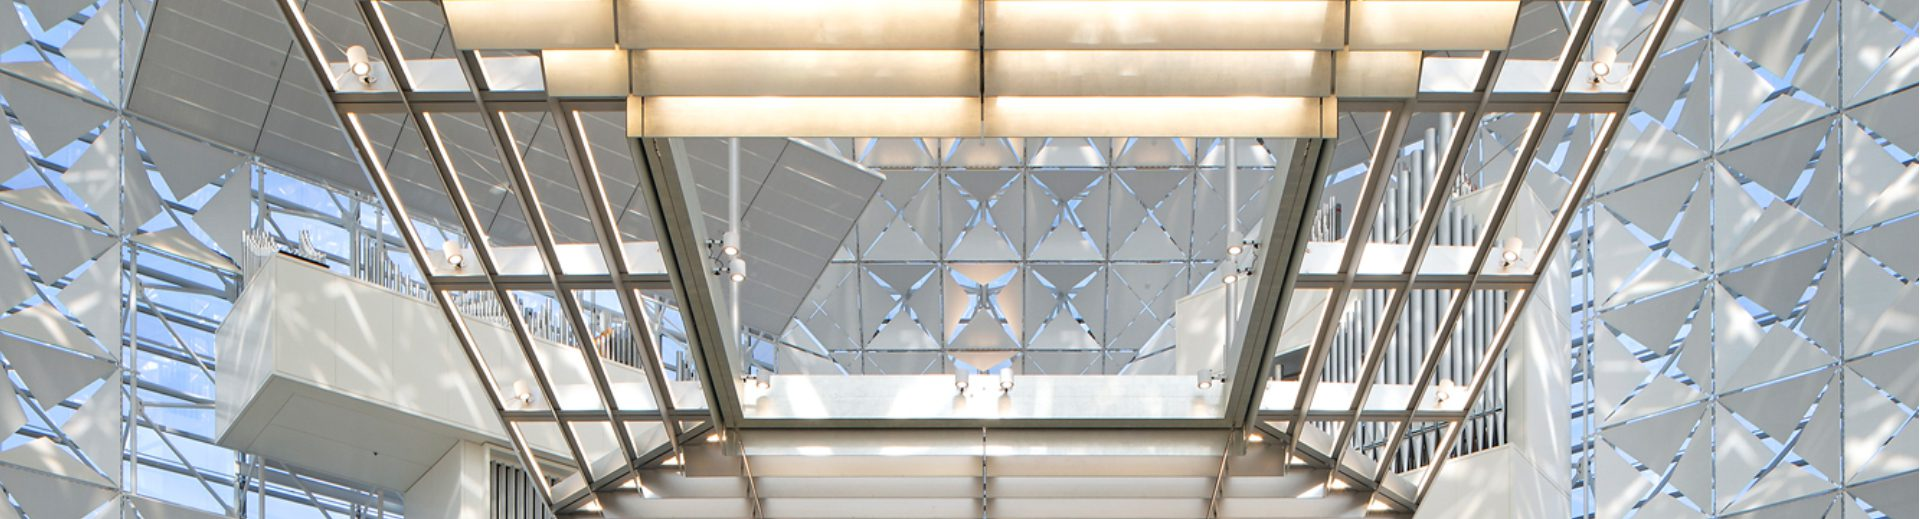 ChristCathedral_TopBanner